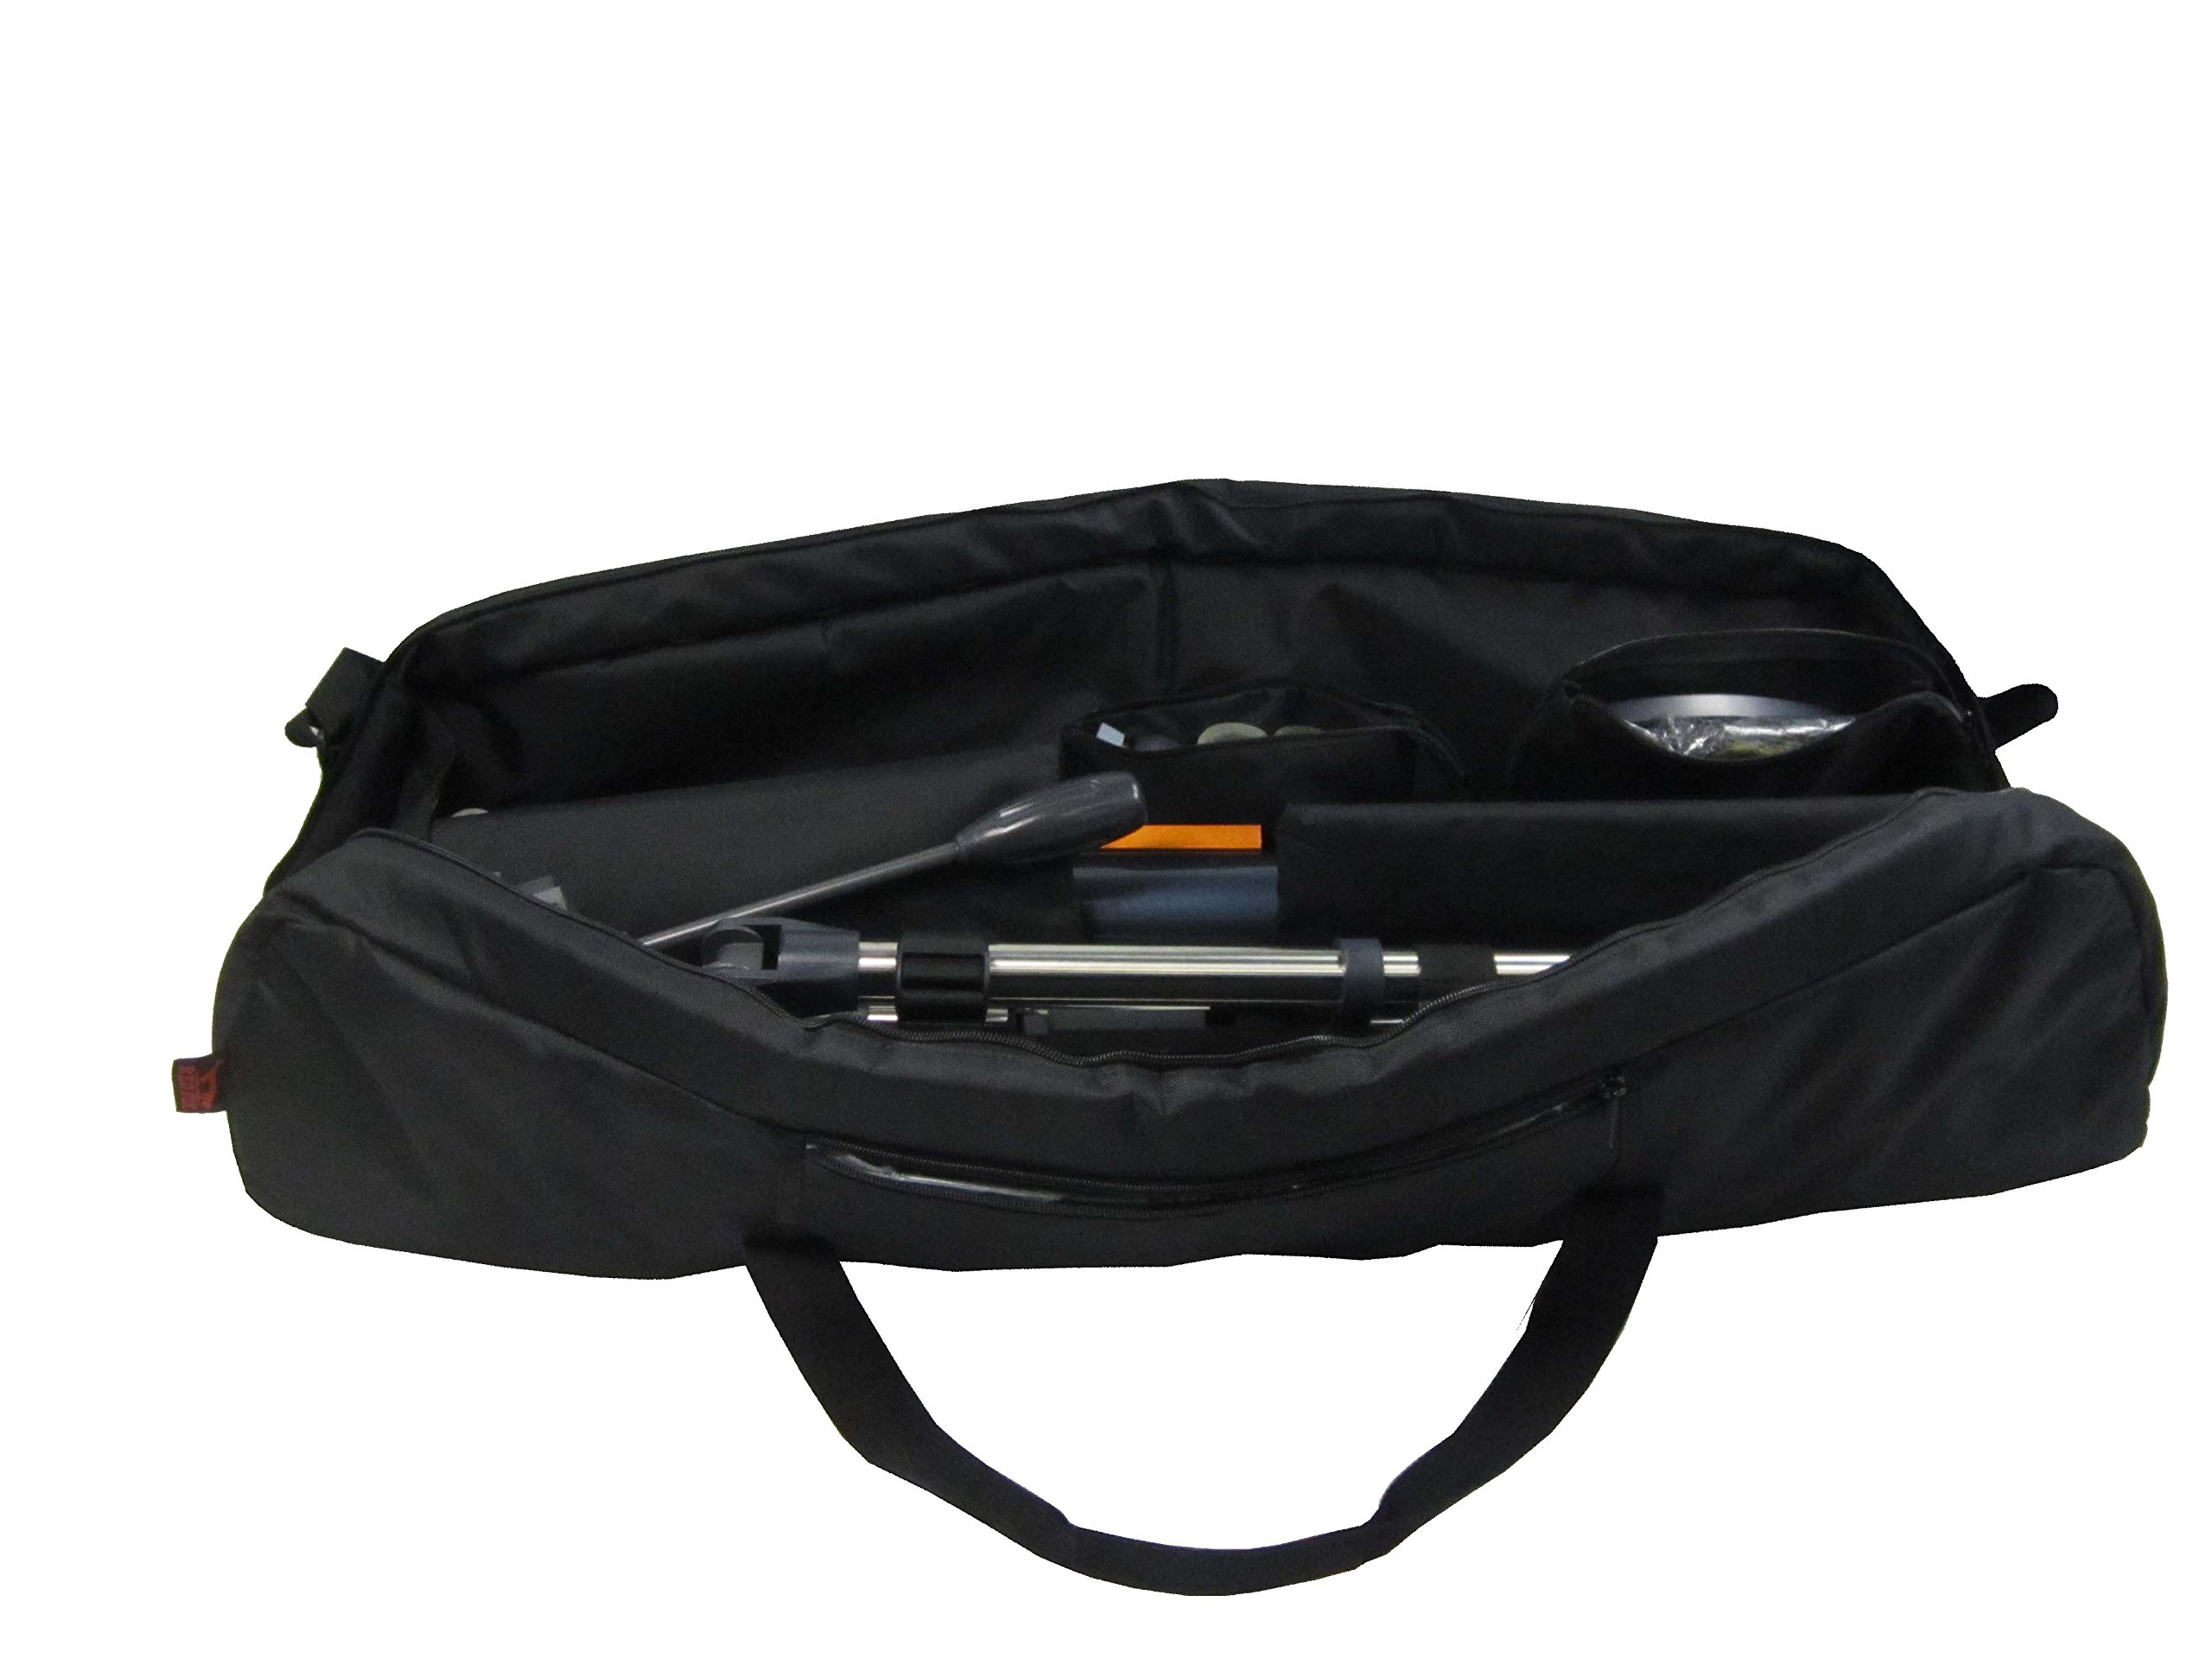 Kuool Camera Protective and Padded Telescope Carry Case - 37.7'' L X 9.8'' w X 9'' H, Cam Bag